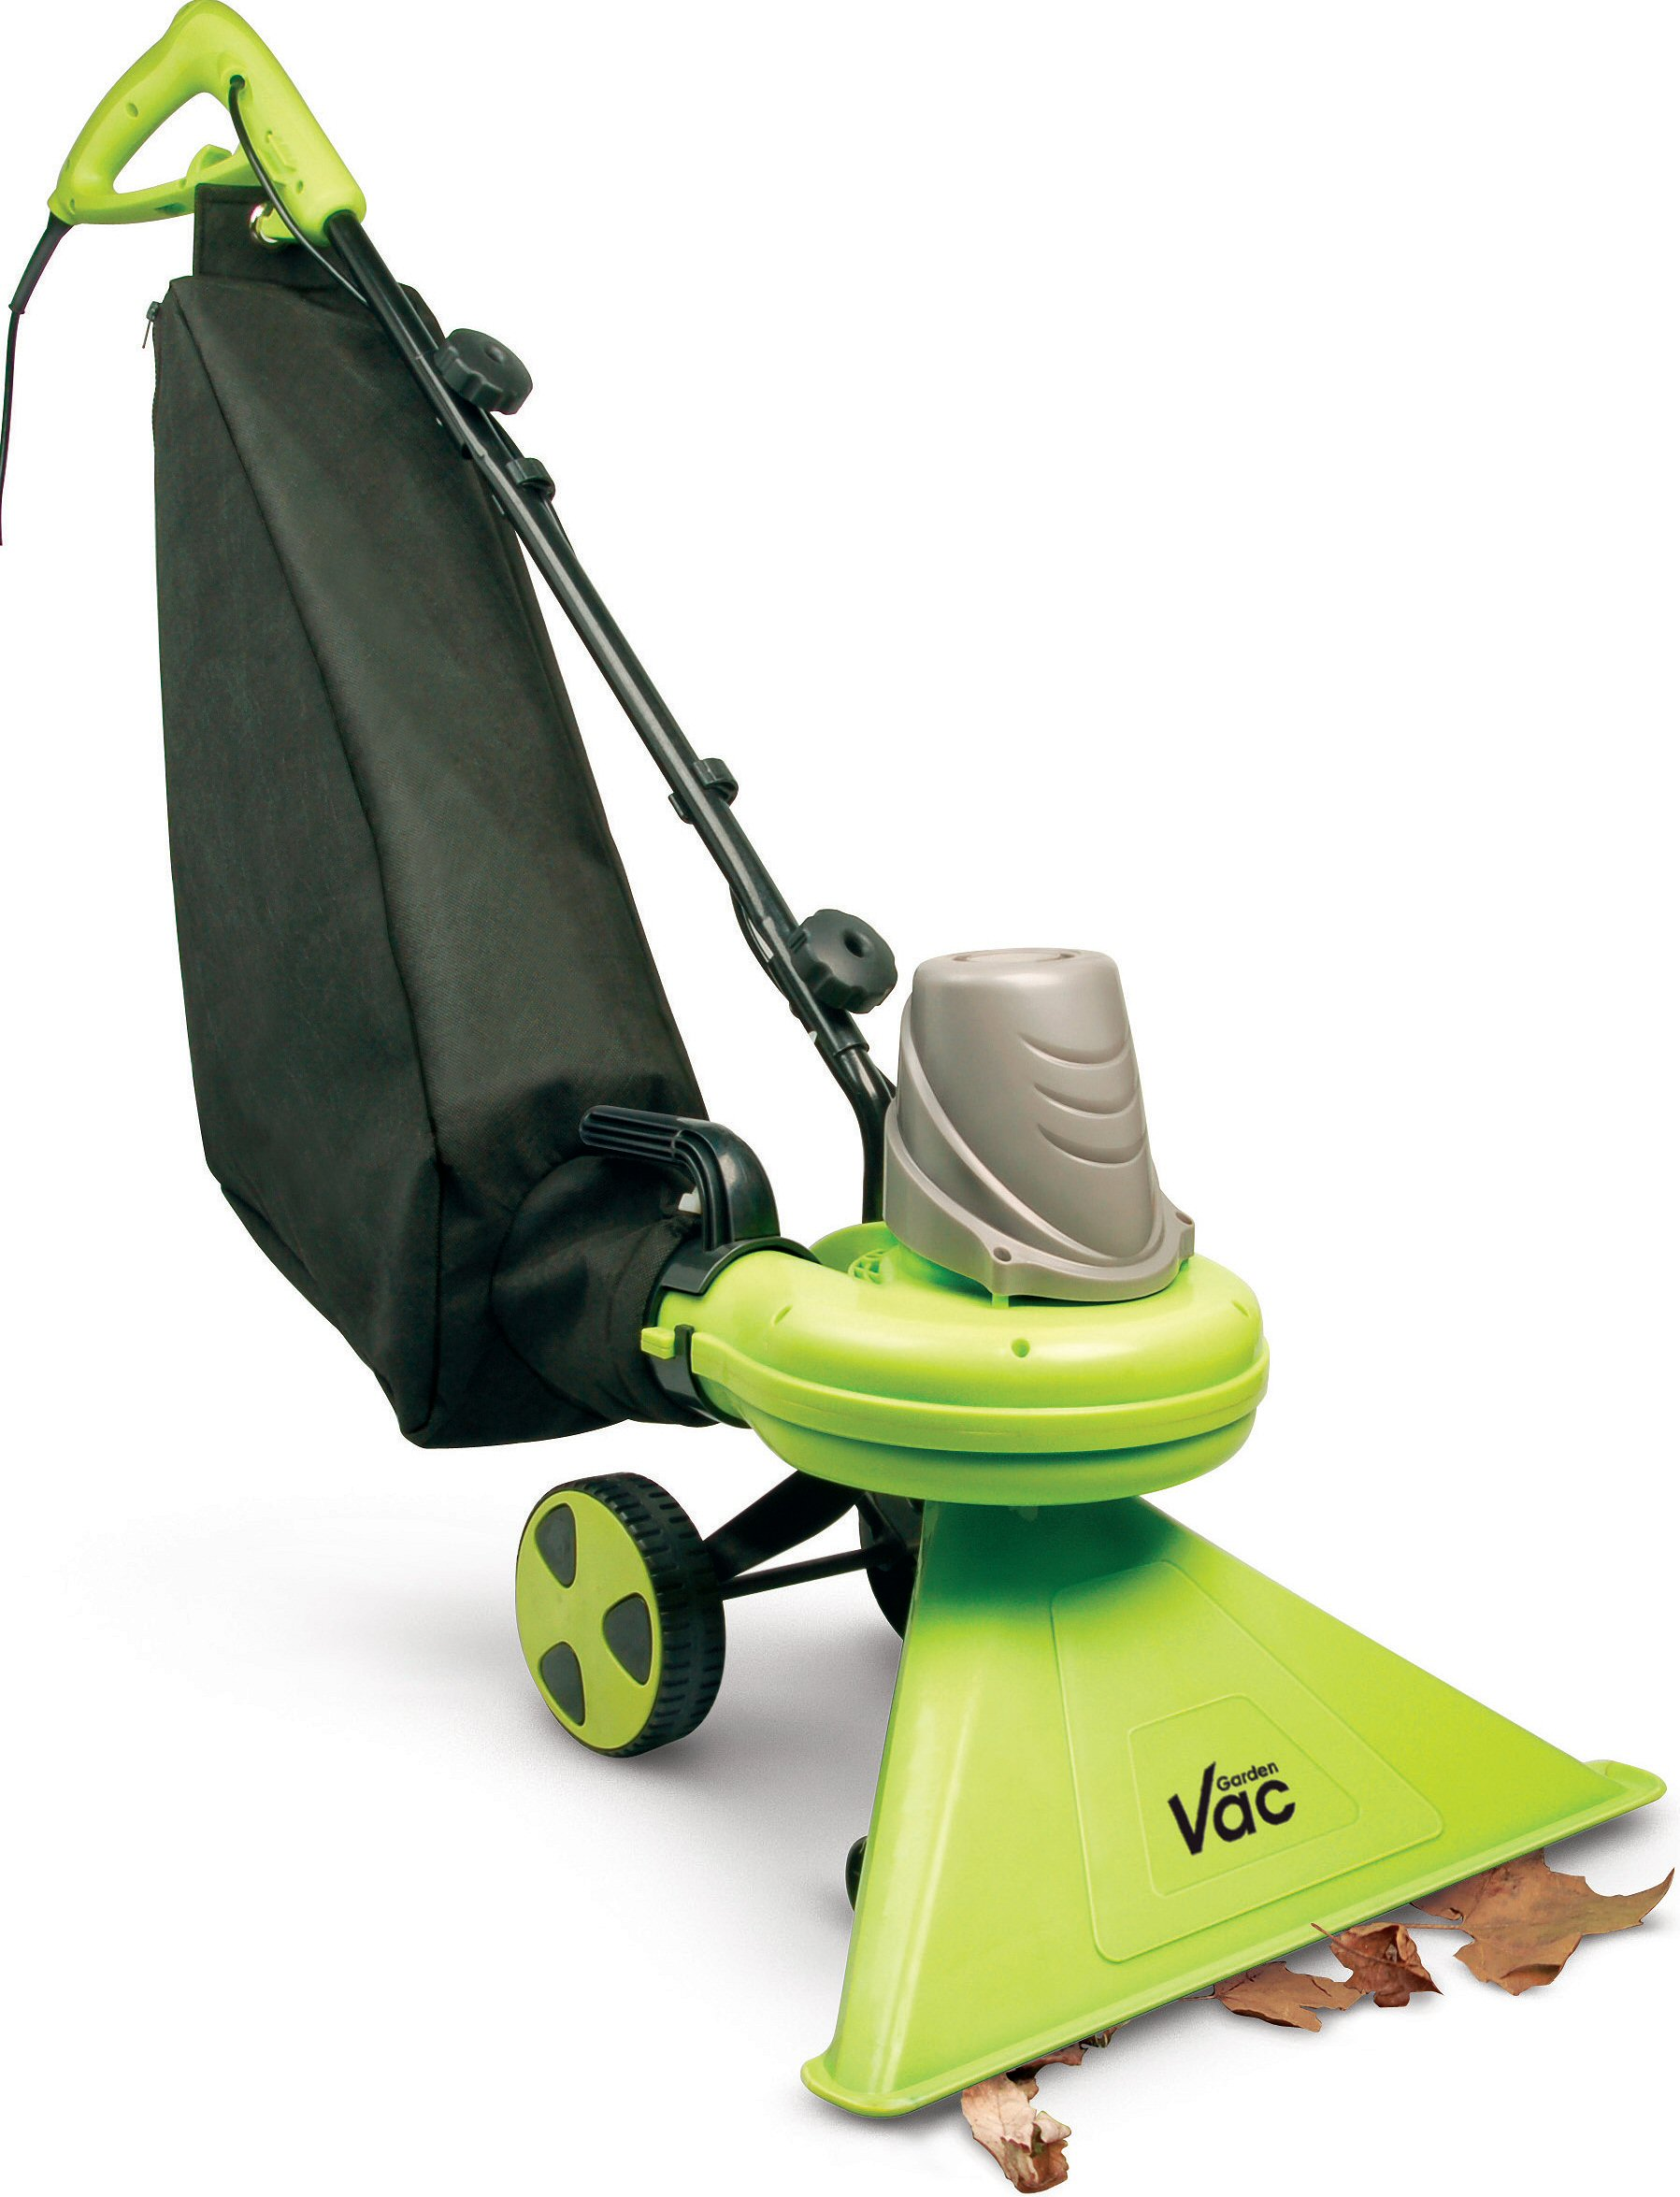 This powerful, easily manoeuvred Garden Vacuum will put an end to the dreary task of sweeping up lea